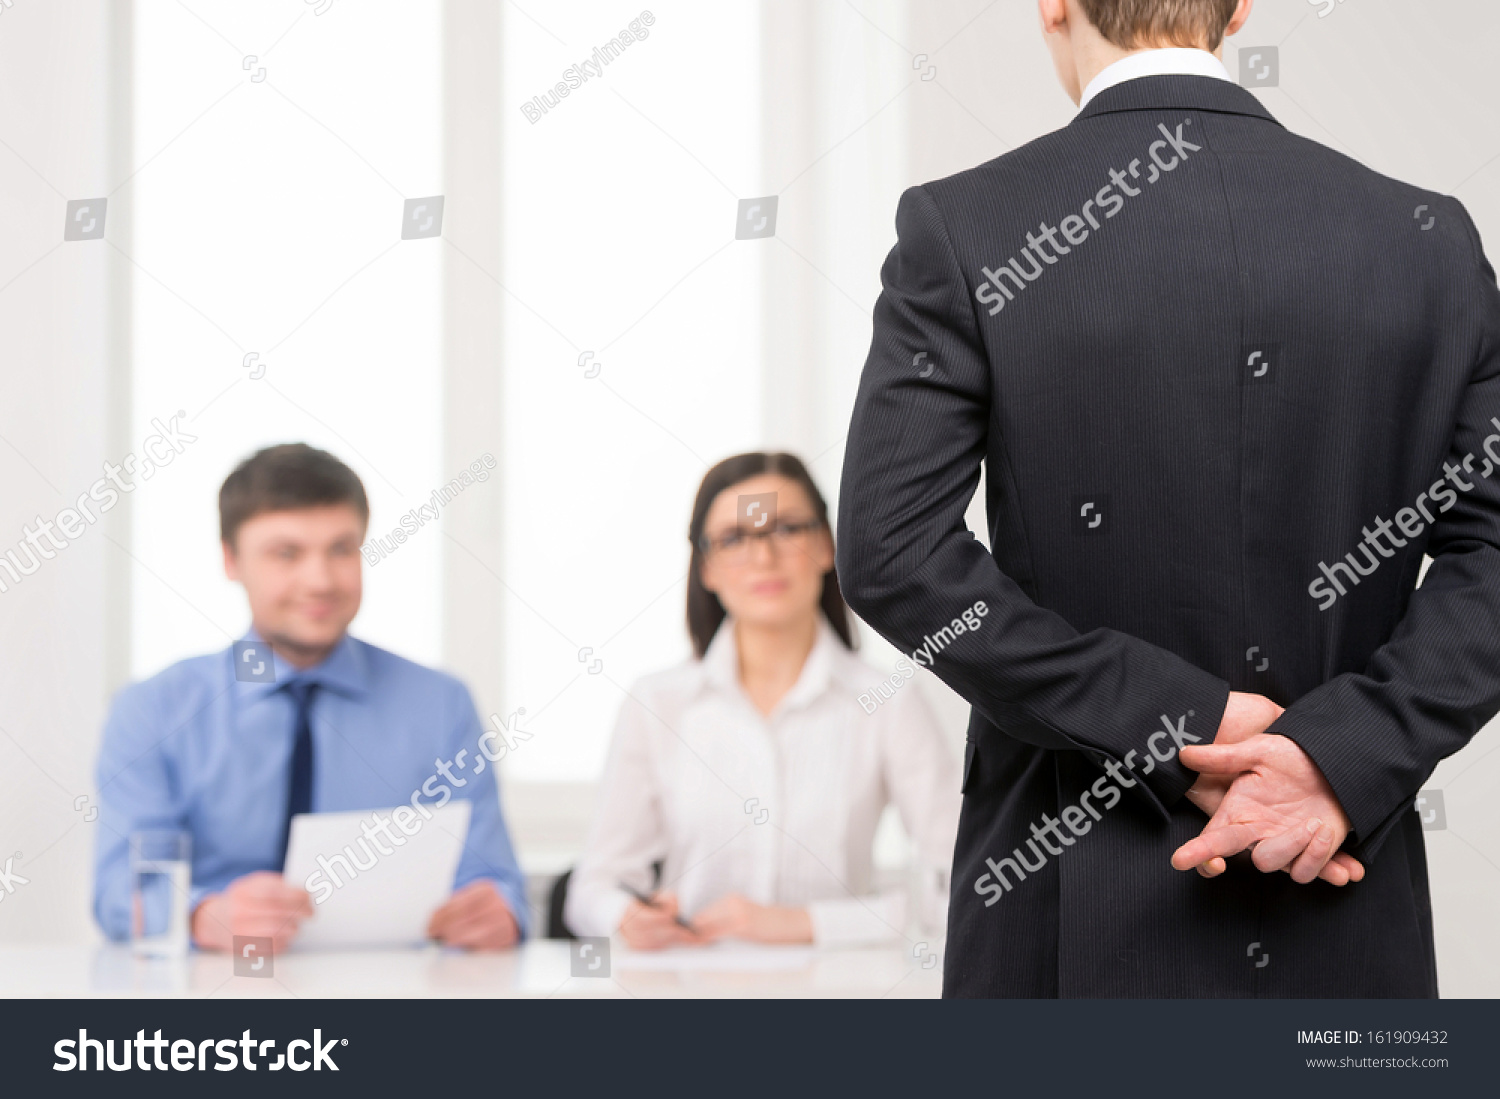 close man back fingers crossed behind stock photo